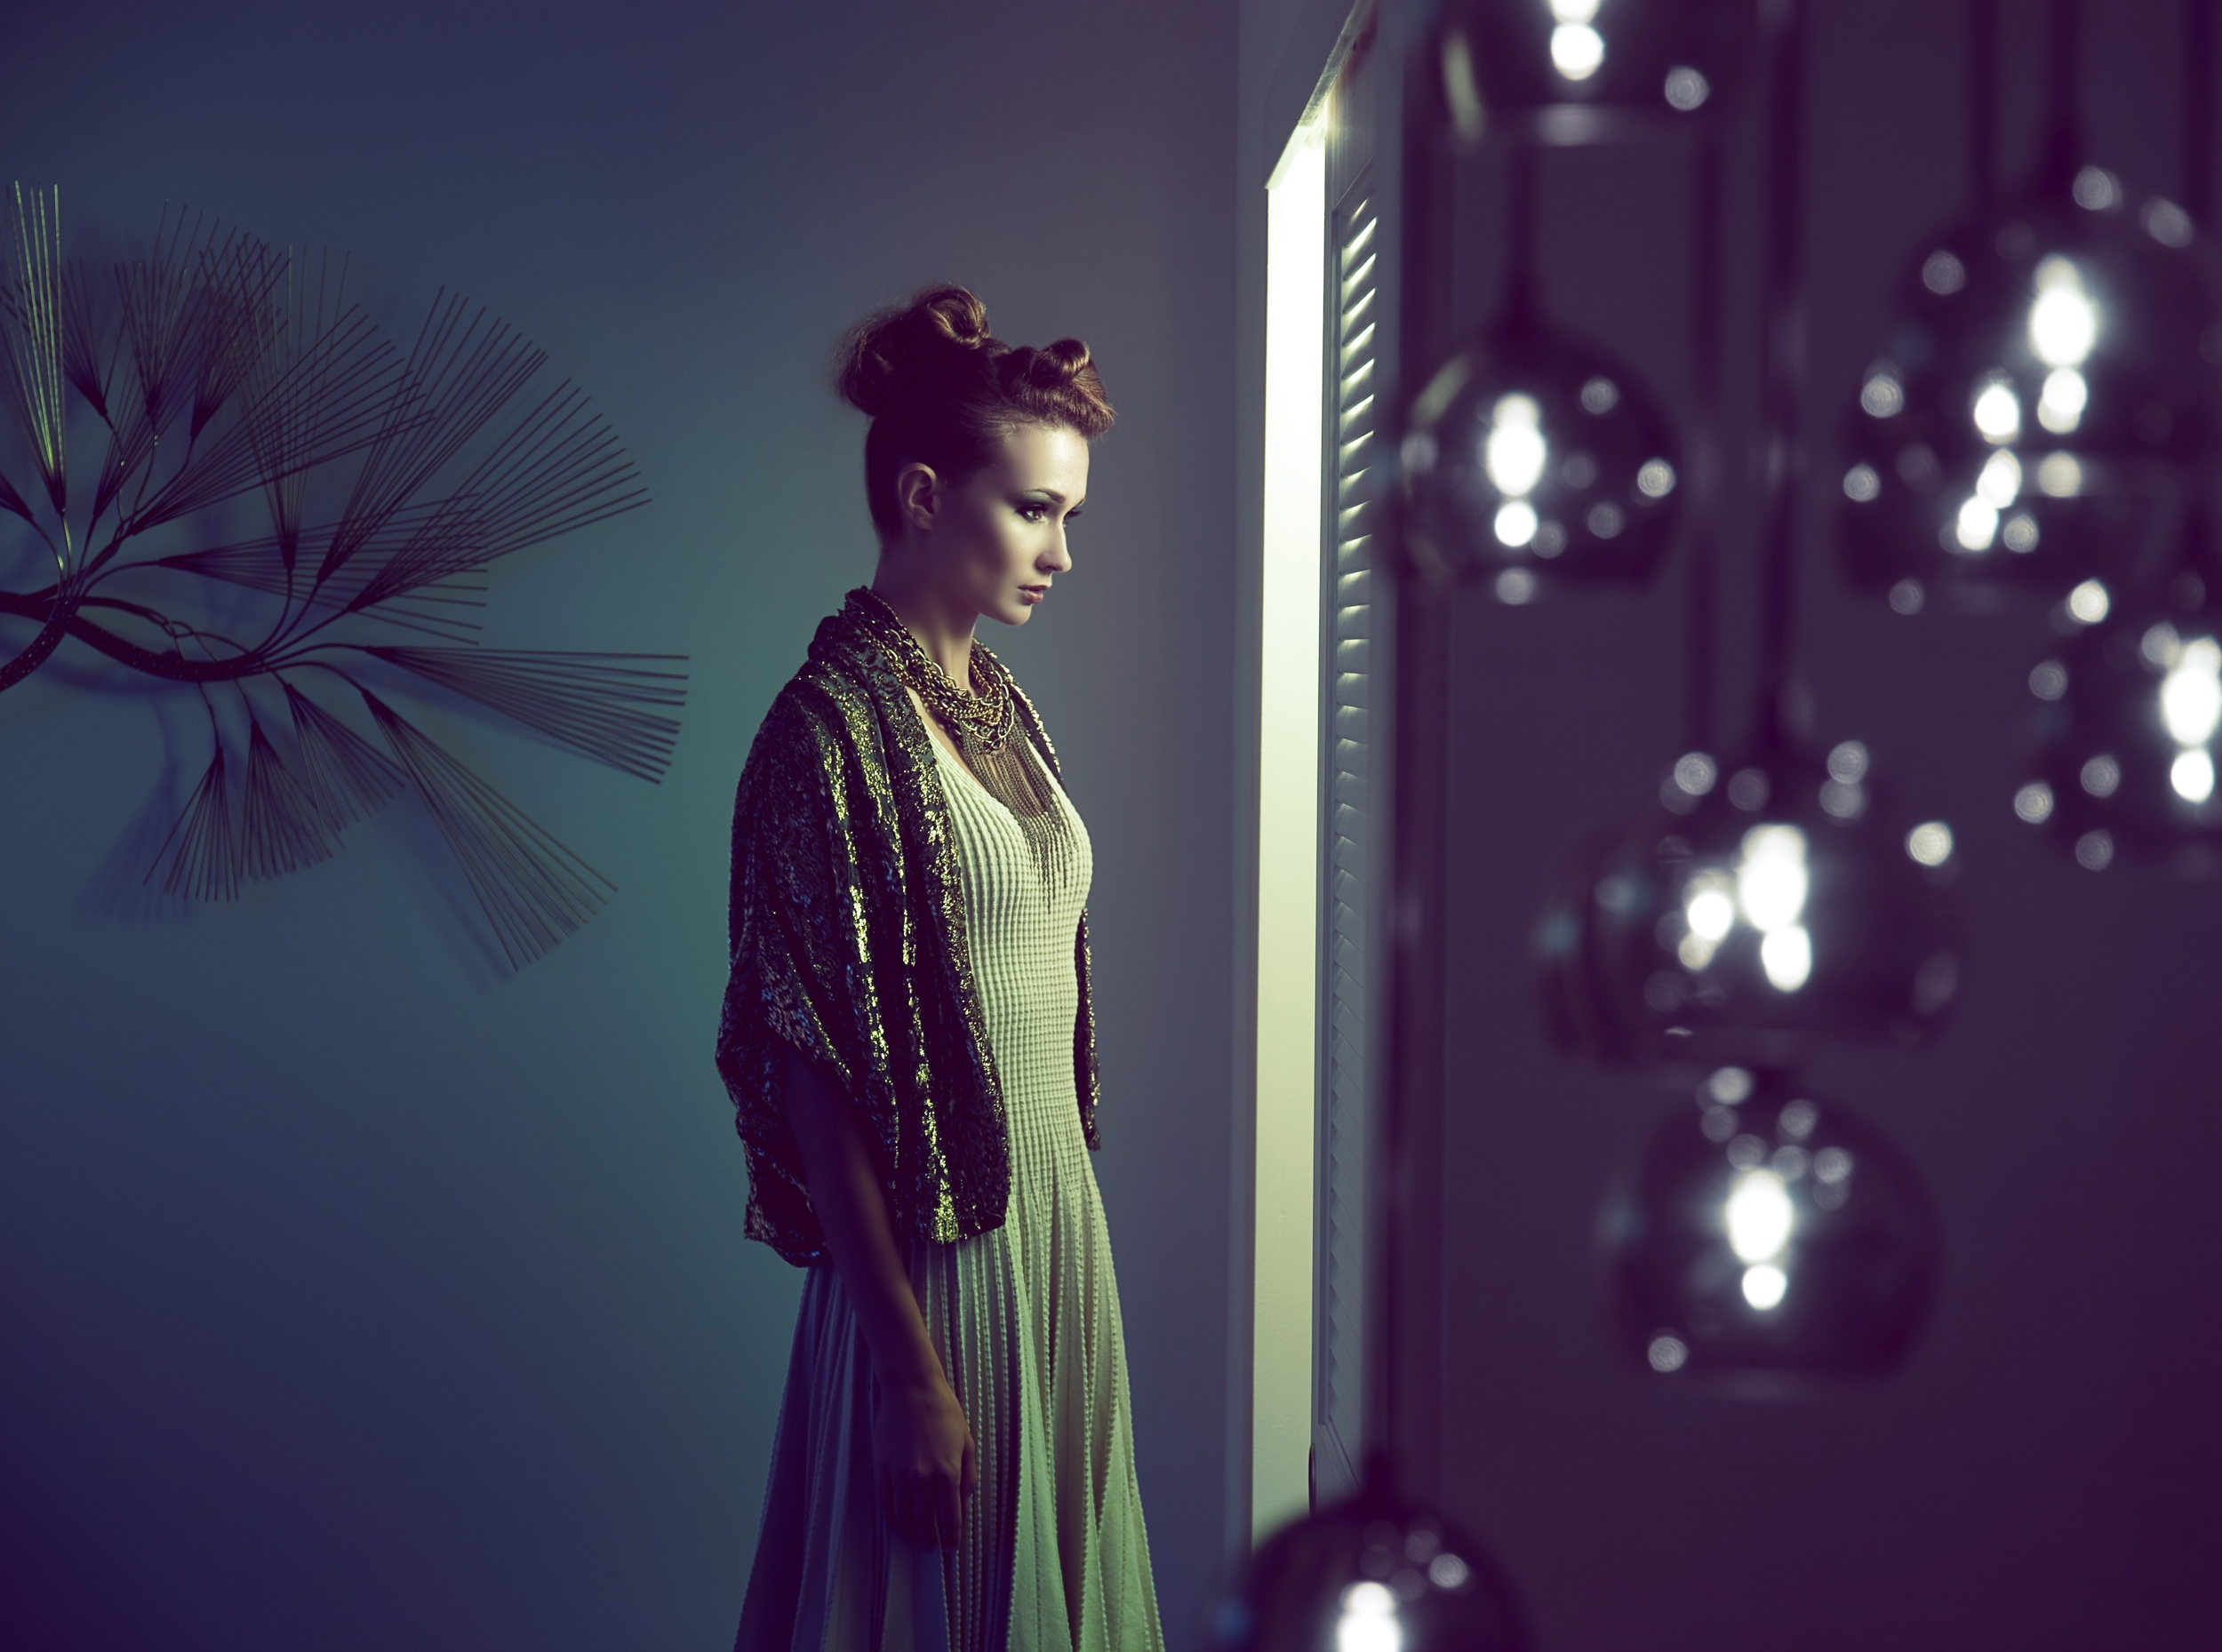 Photography by  Rus Anson   Styled by Erica Henderson